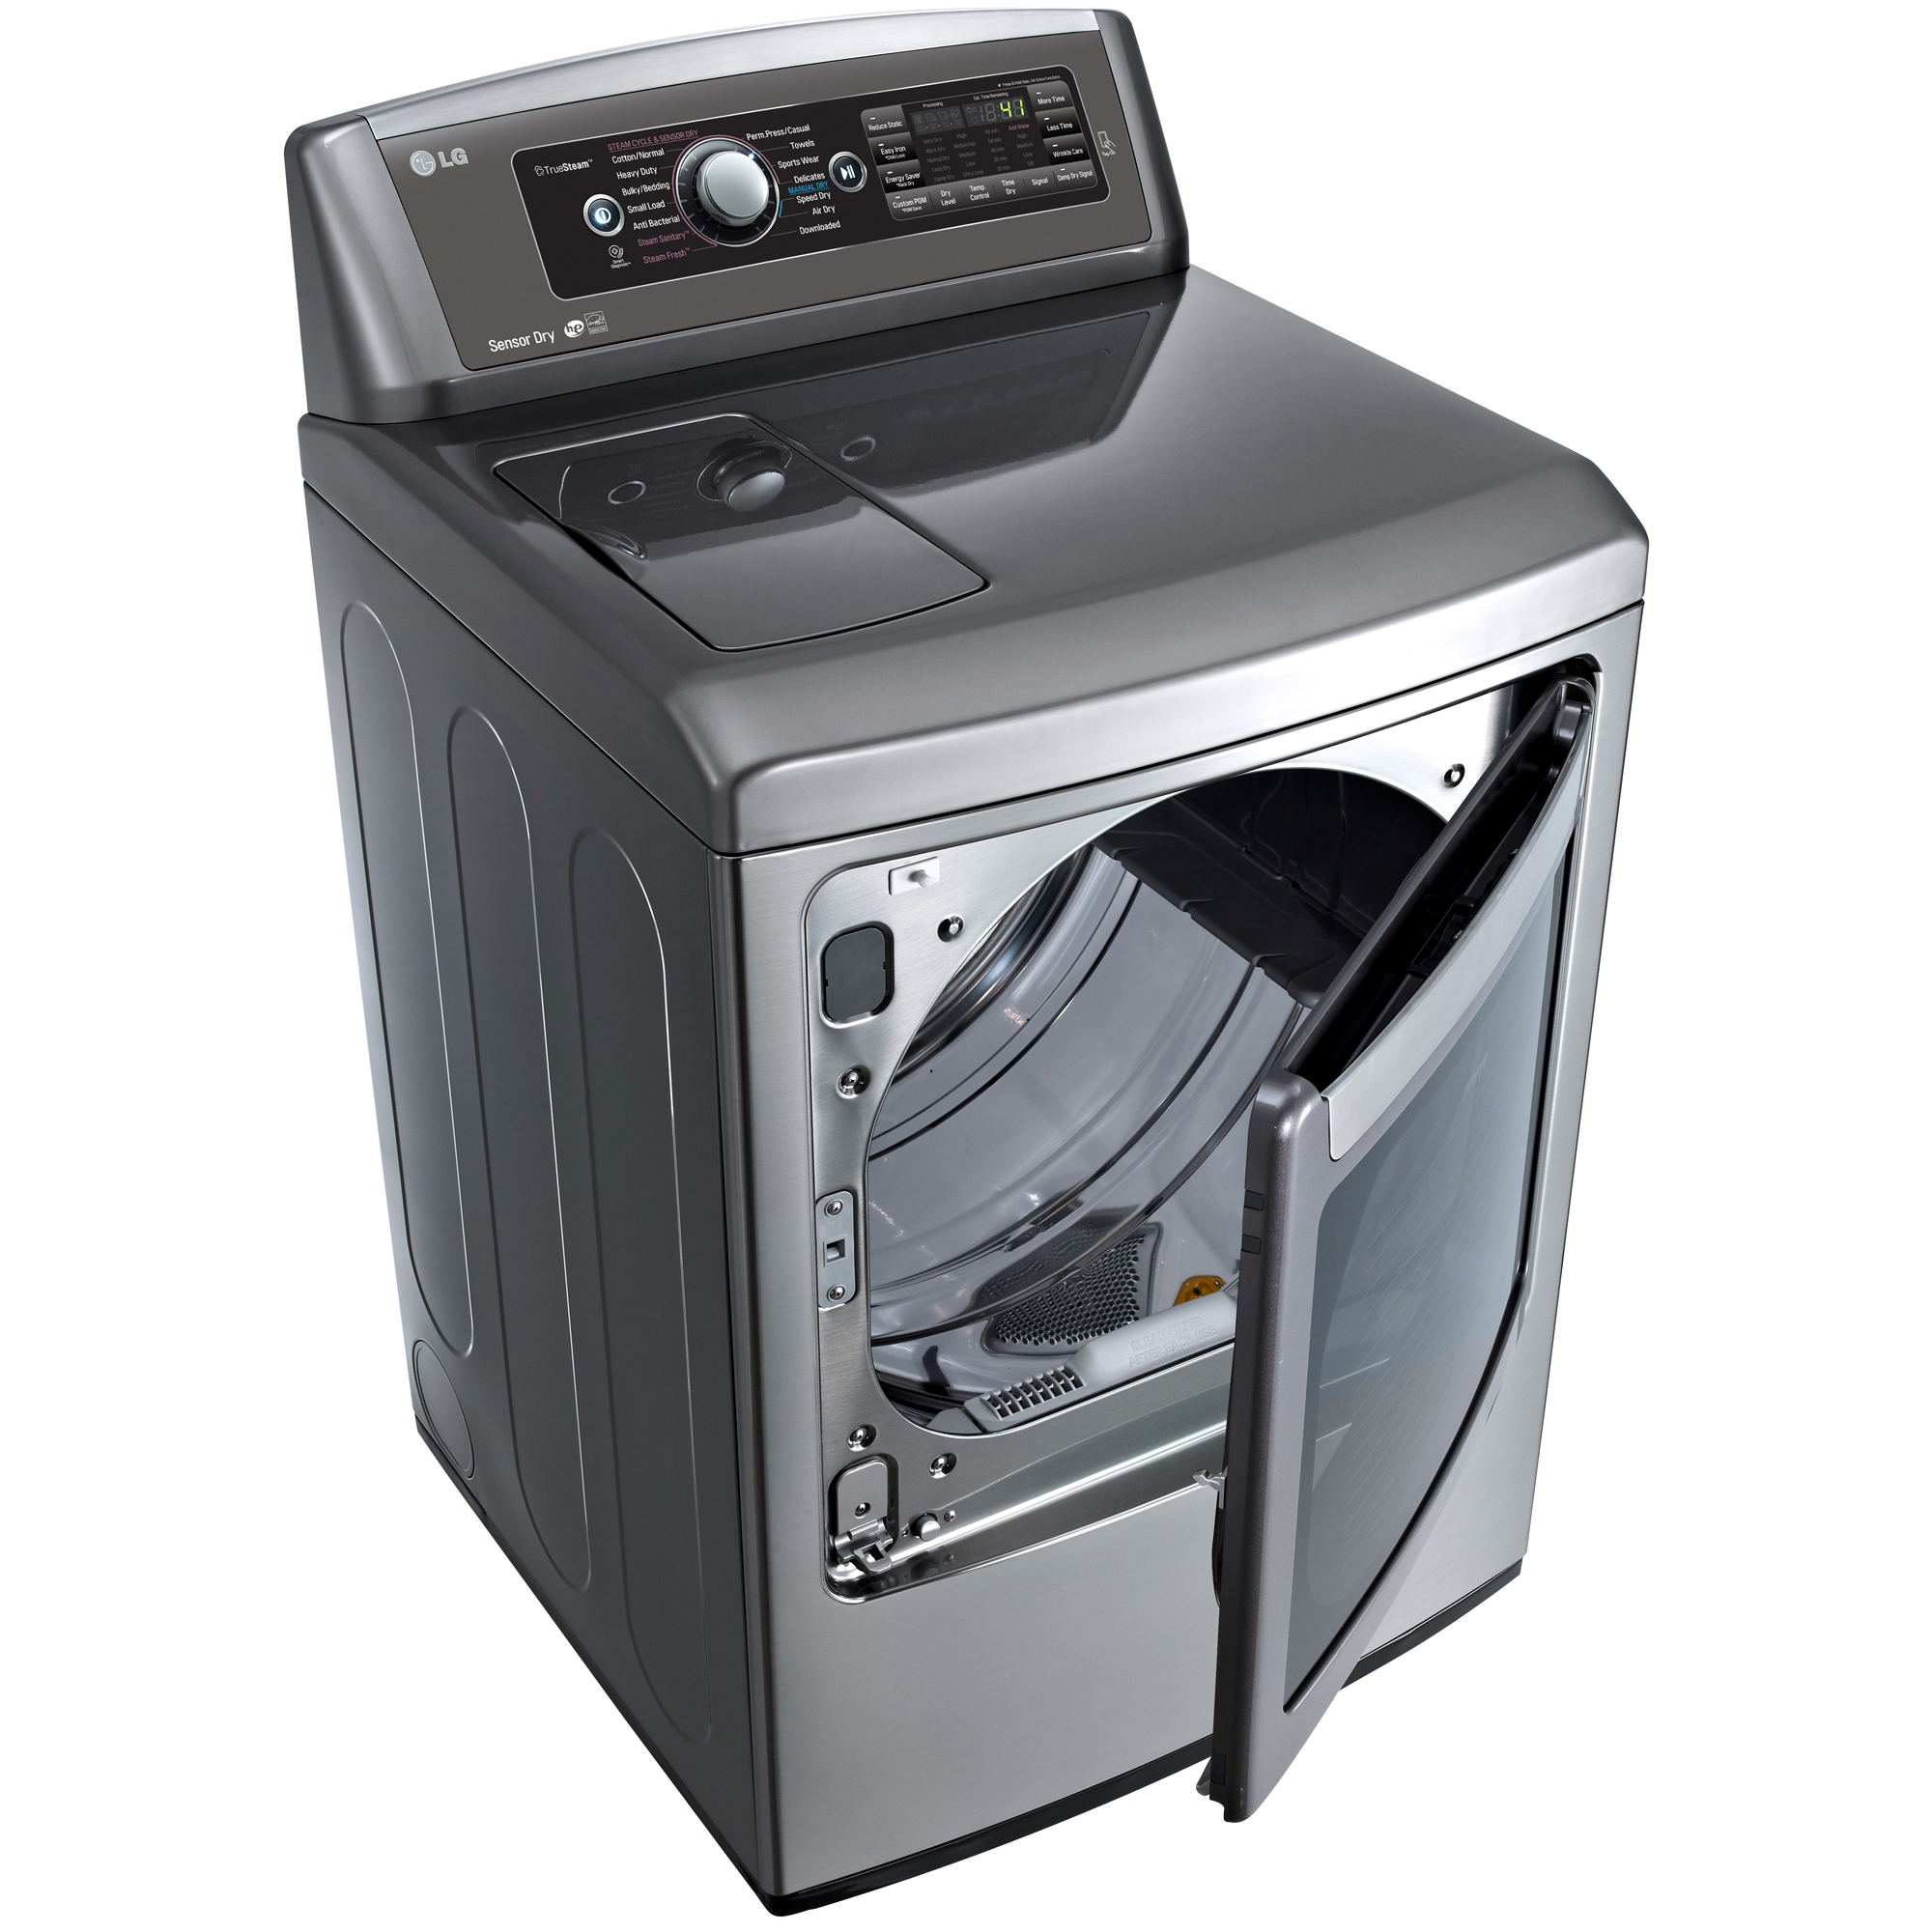 LG DLEX5780VE 7.3 cu. ft. Steam Electric Dryer w/ EasyLoad™ Door - Graphite Steel